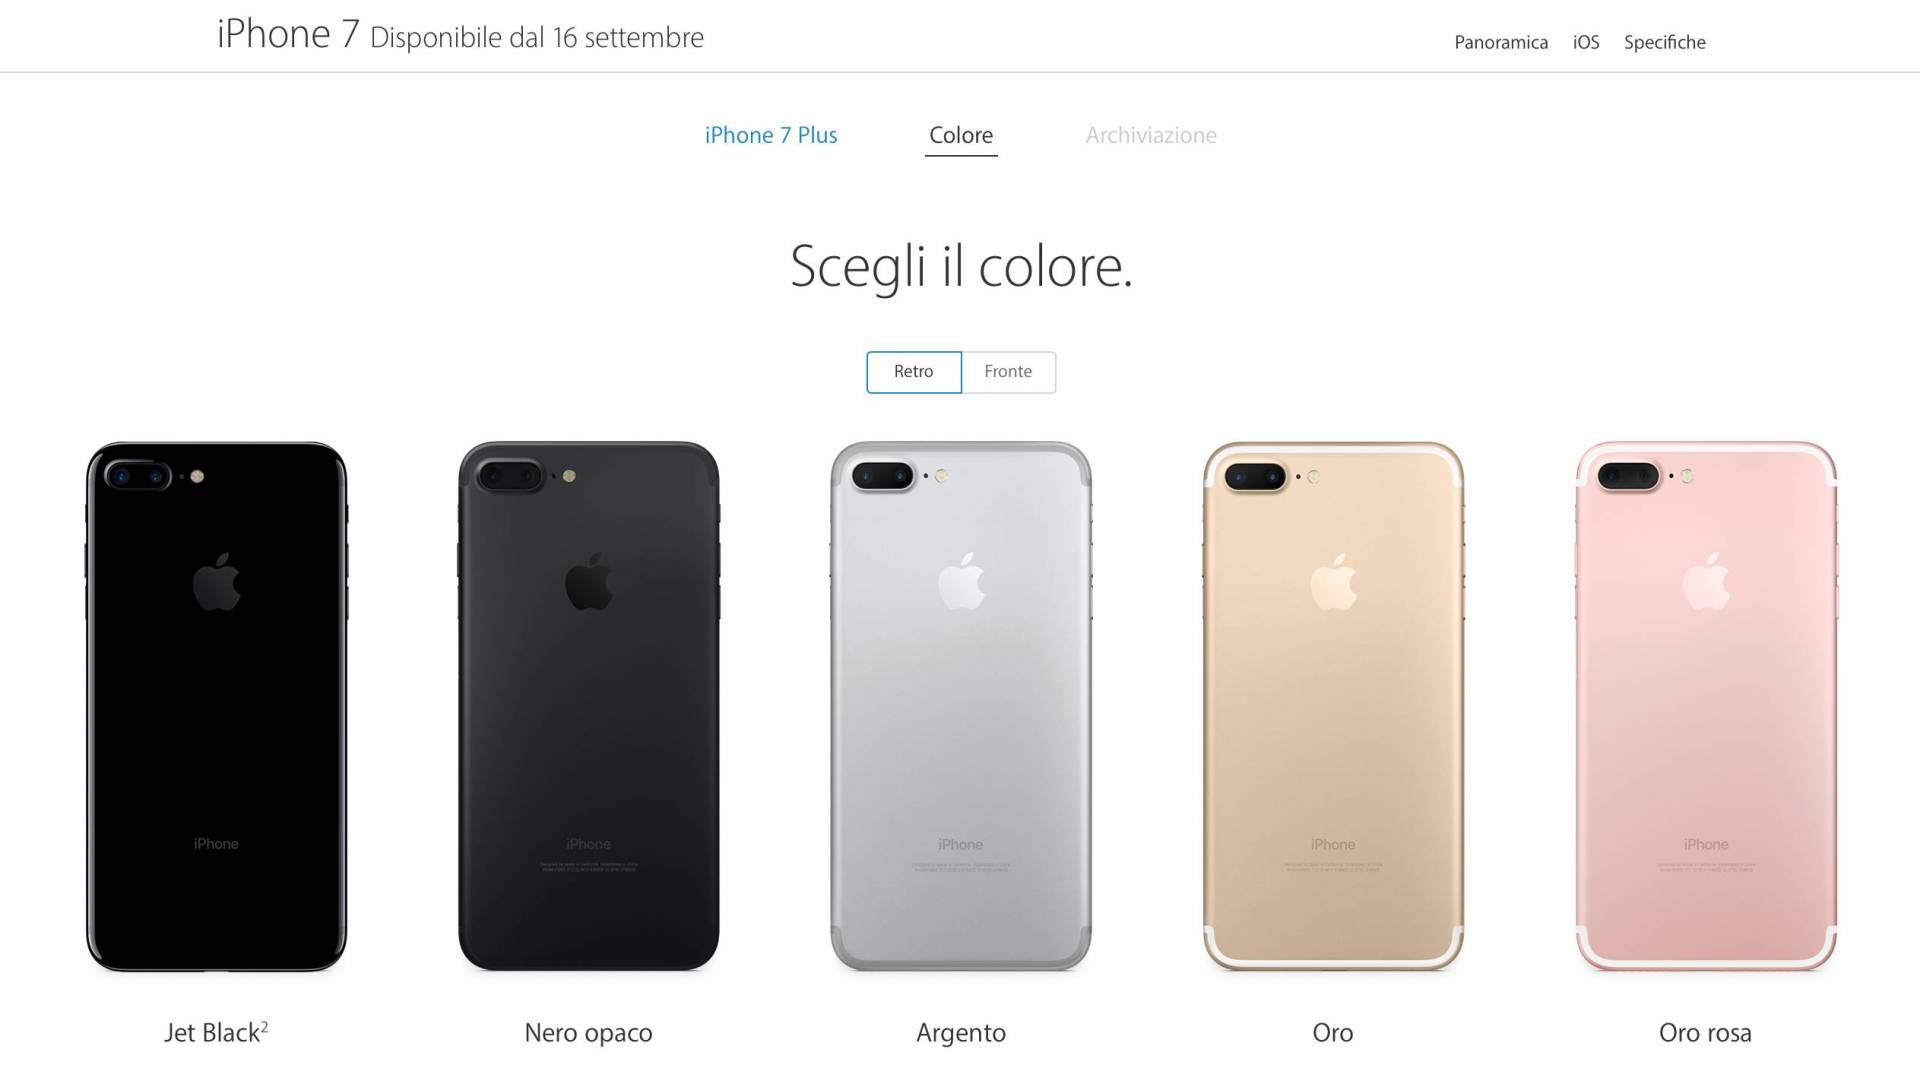 schermata 2016 09 09 alle 18.43.21 Iniziati i pre ordini di iPhone 7, iPhone 7 Plus e Apple Watch Series 2 in Italia!